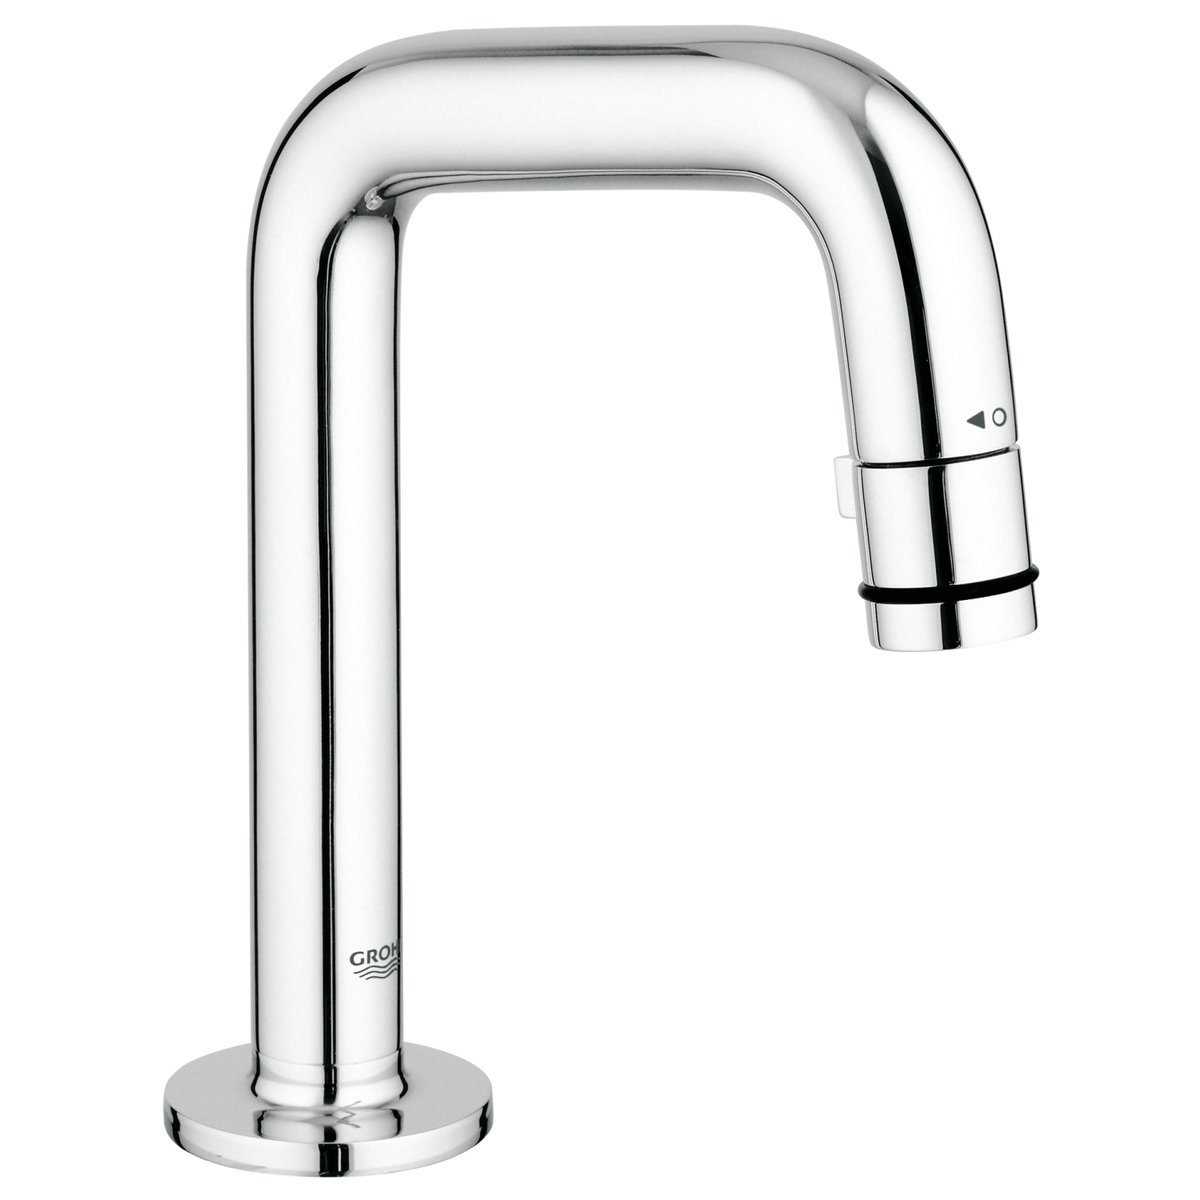 grohe universal robinet lave mains avec bec haut u chrome. Black Bedroom Furniture Sets. Home Design Ideas